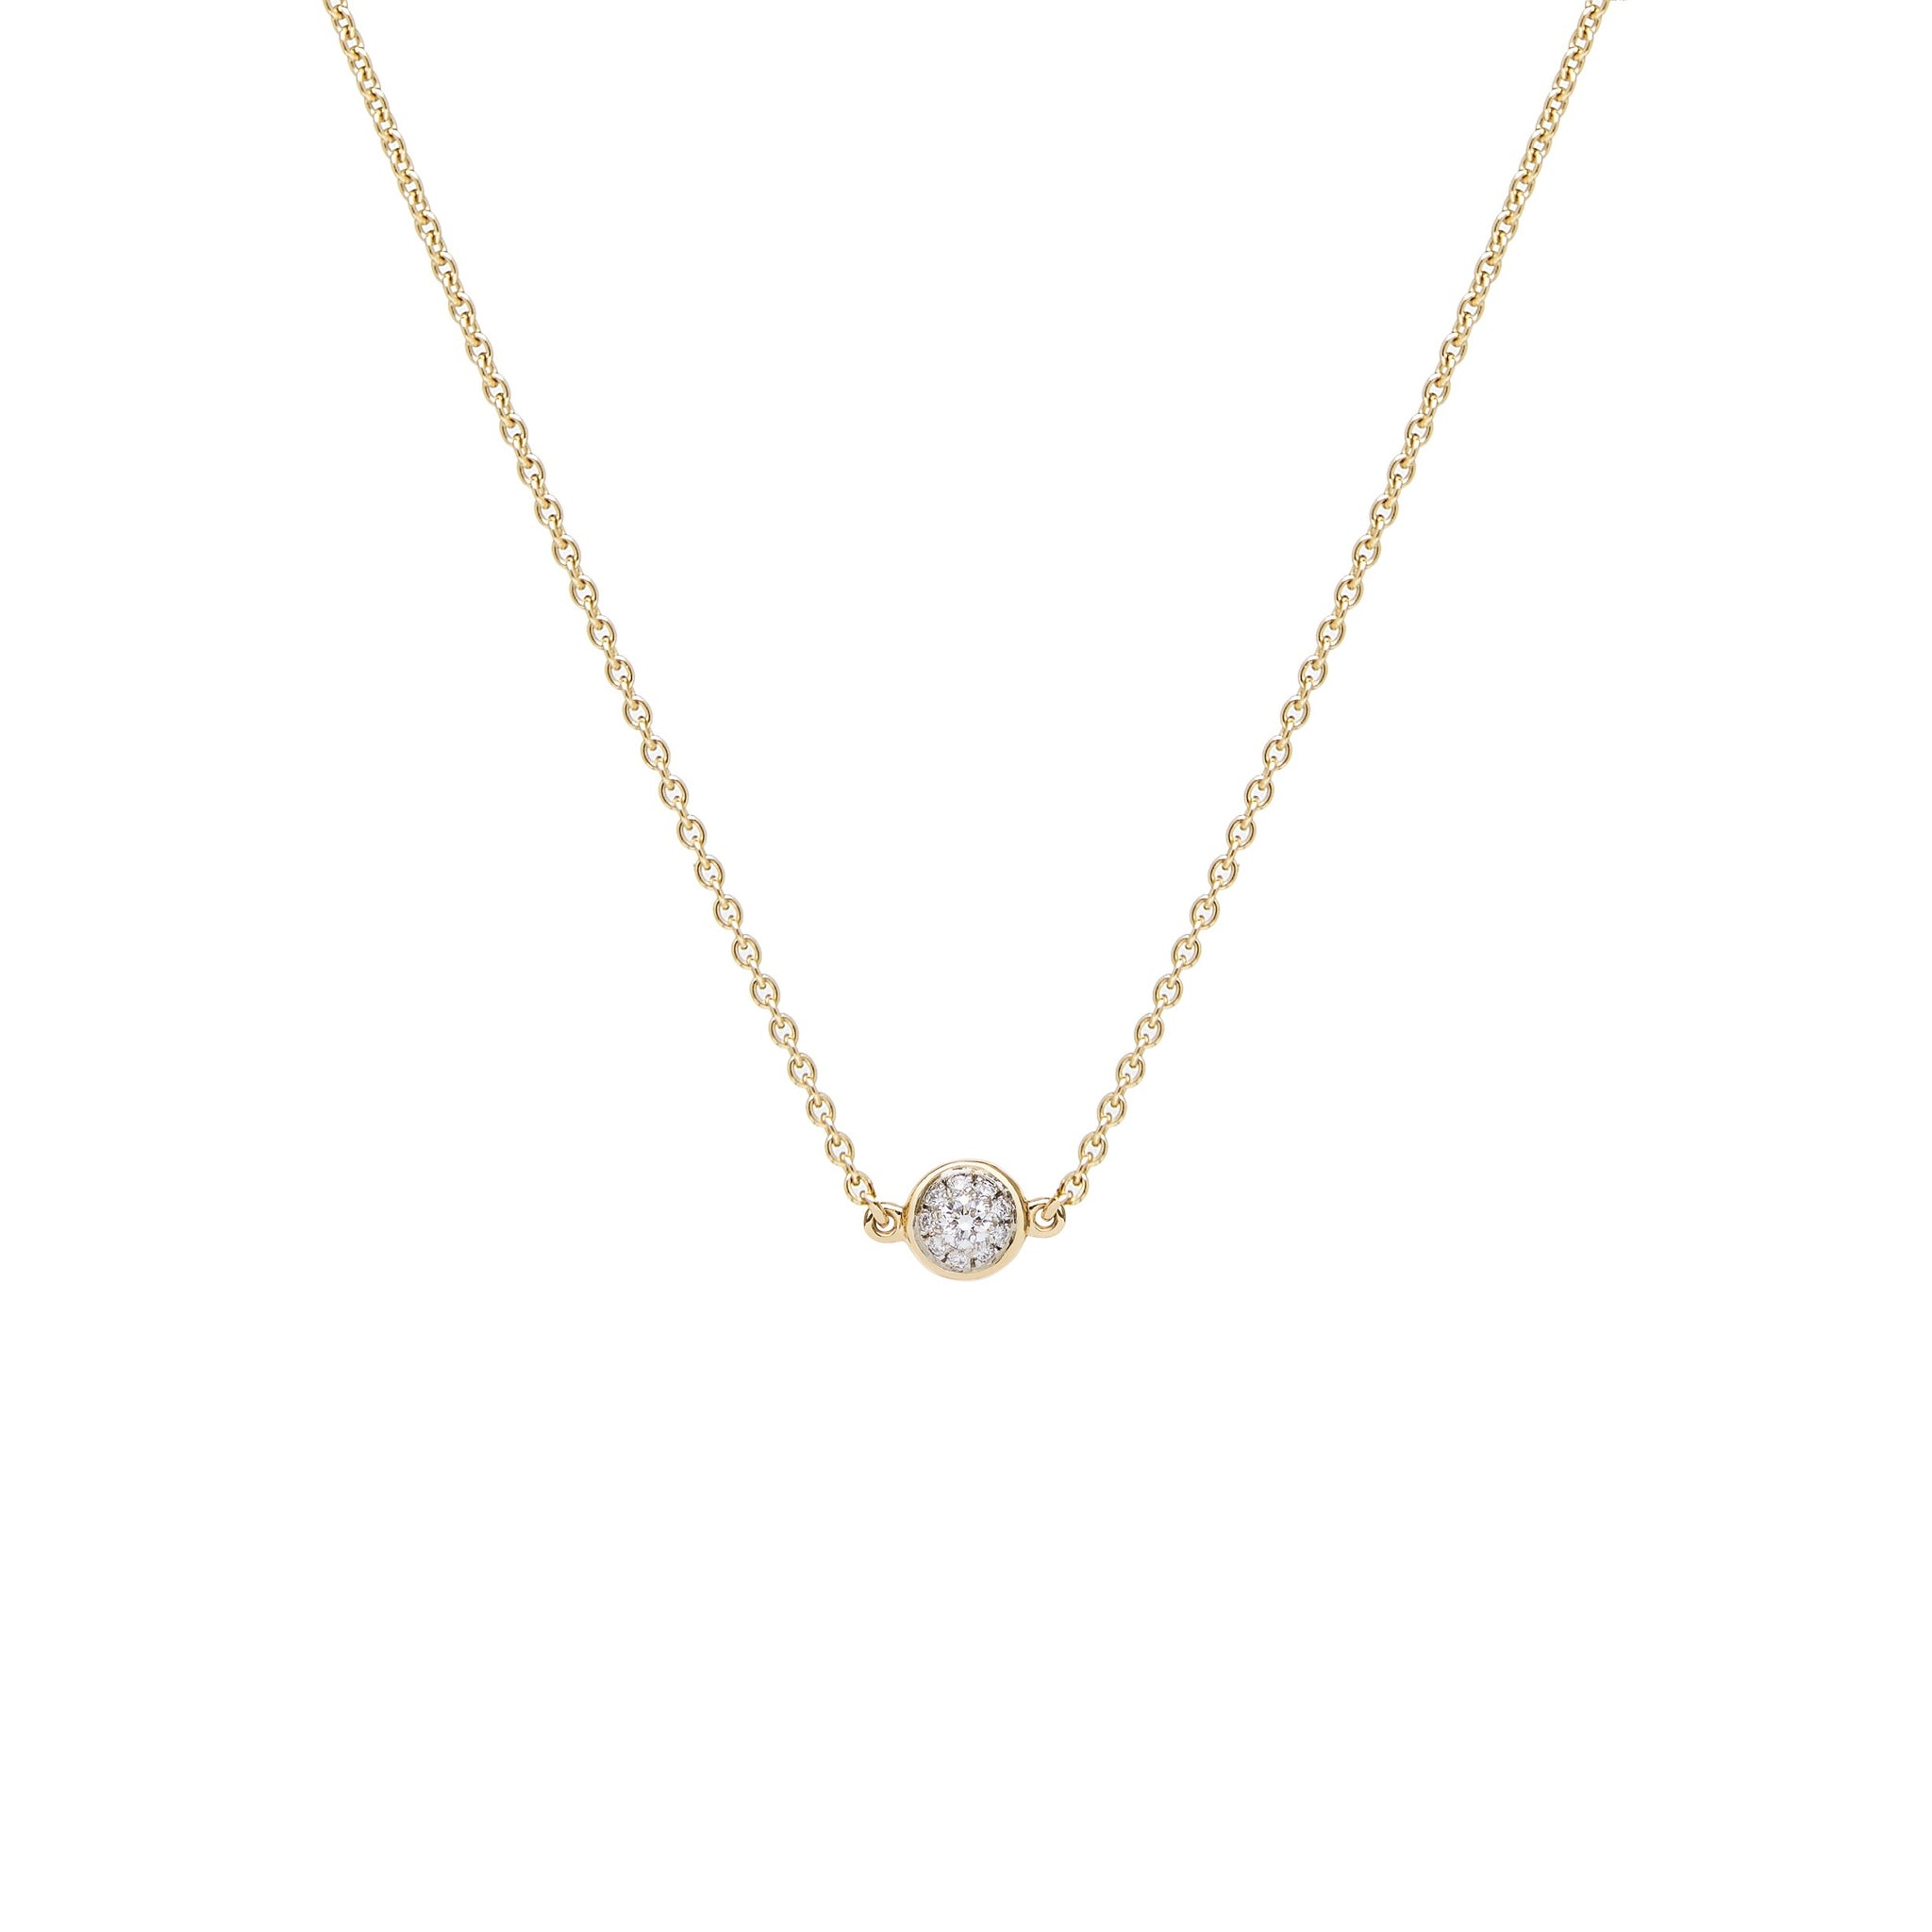 Mana Necklace - Yellow Gold and Diamond